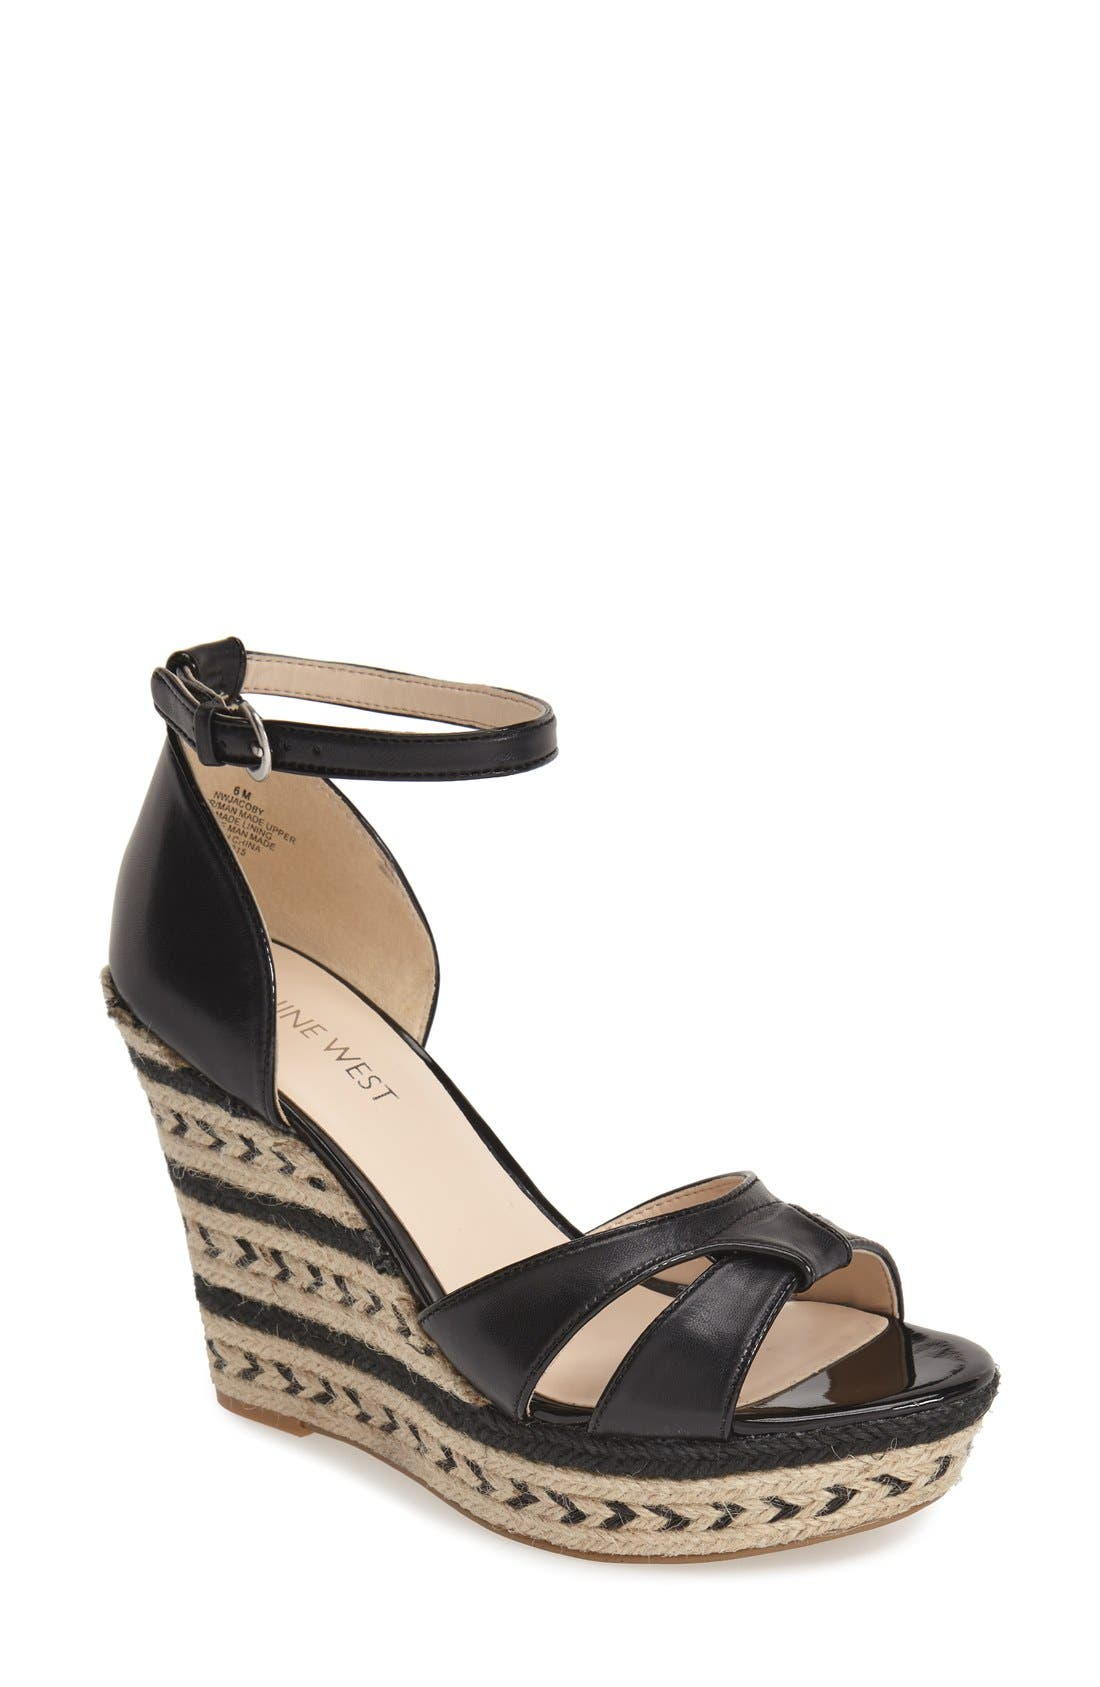 Main Image - Nine West 'Jacoby' Espadrille Wedge Sandal (Women)